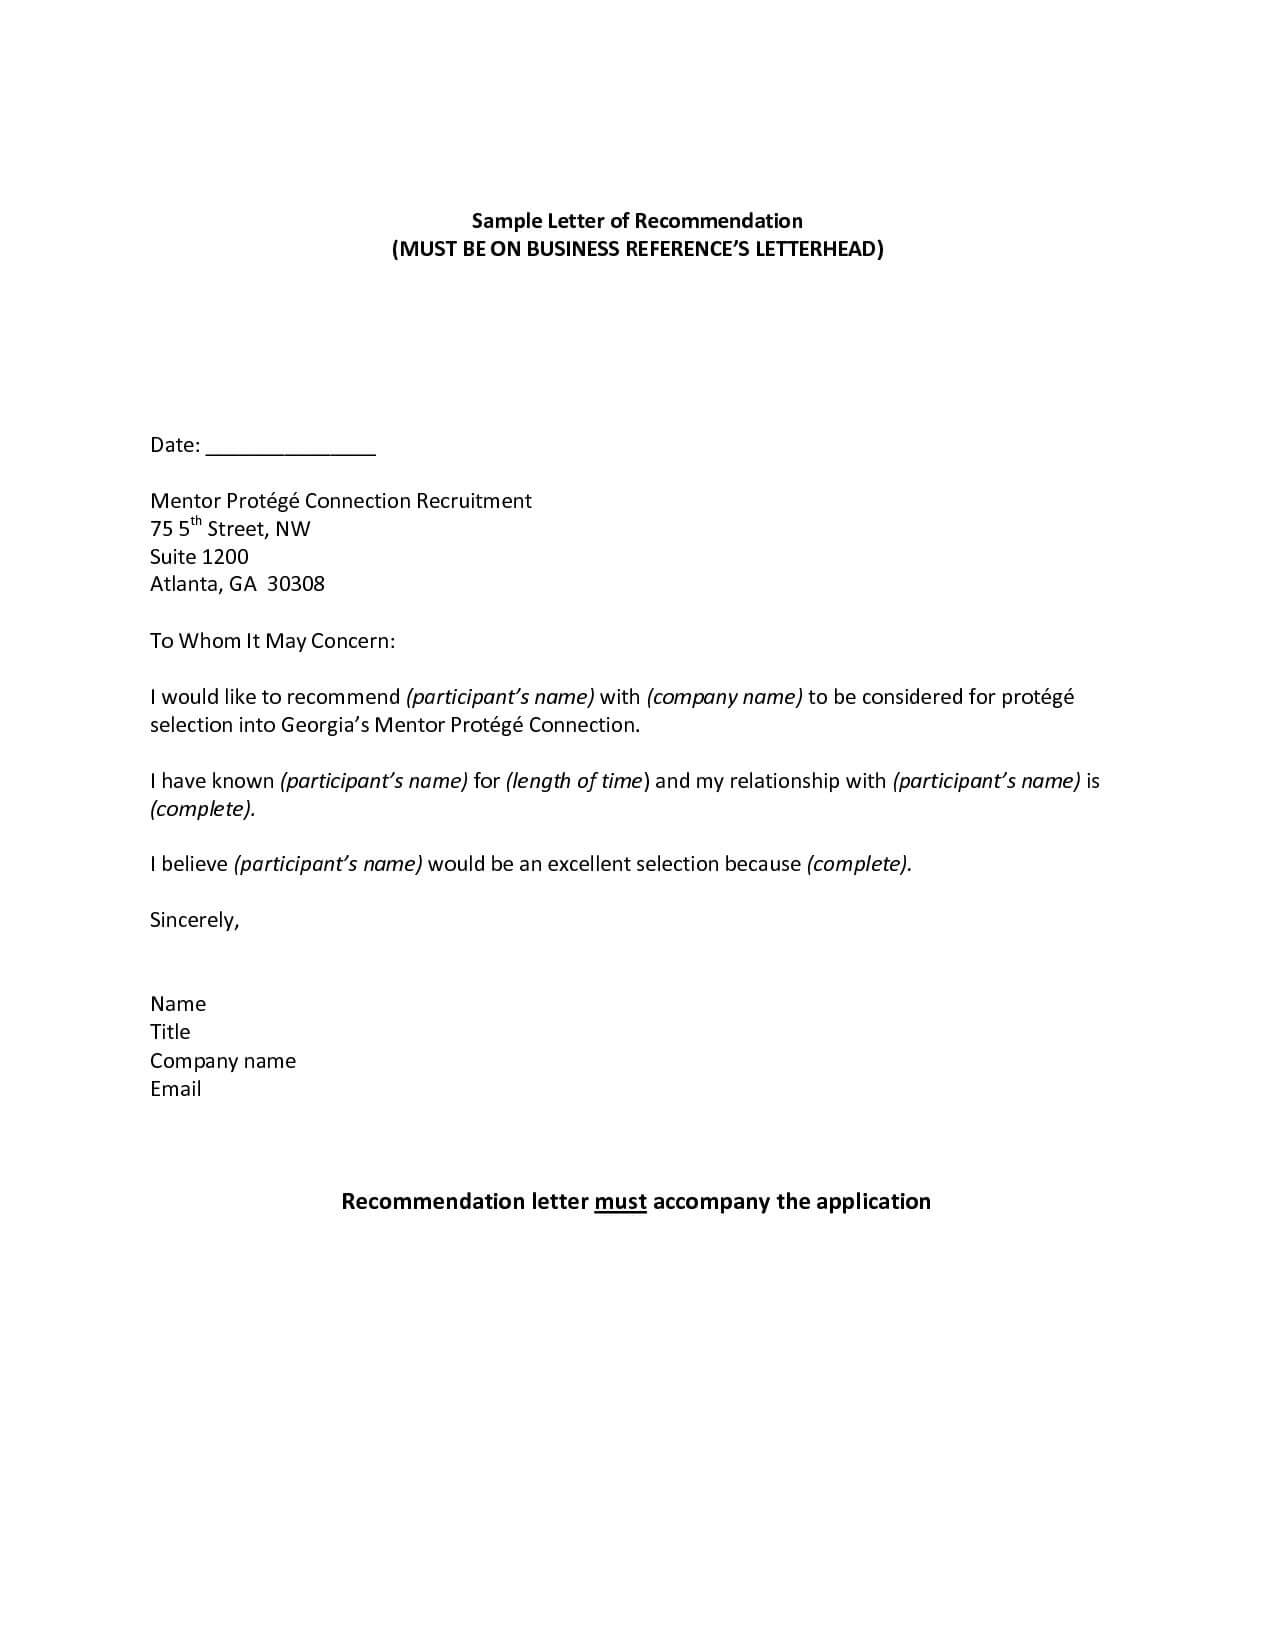 Impressive Letter Of Recommendation Templates Word Template regarding Business Reference Template Word